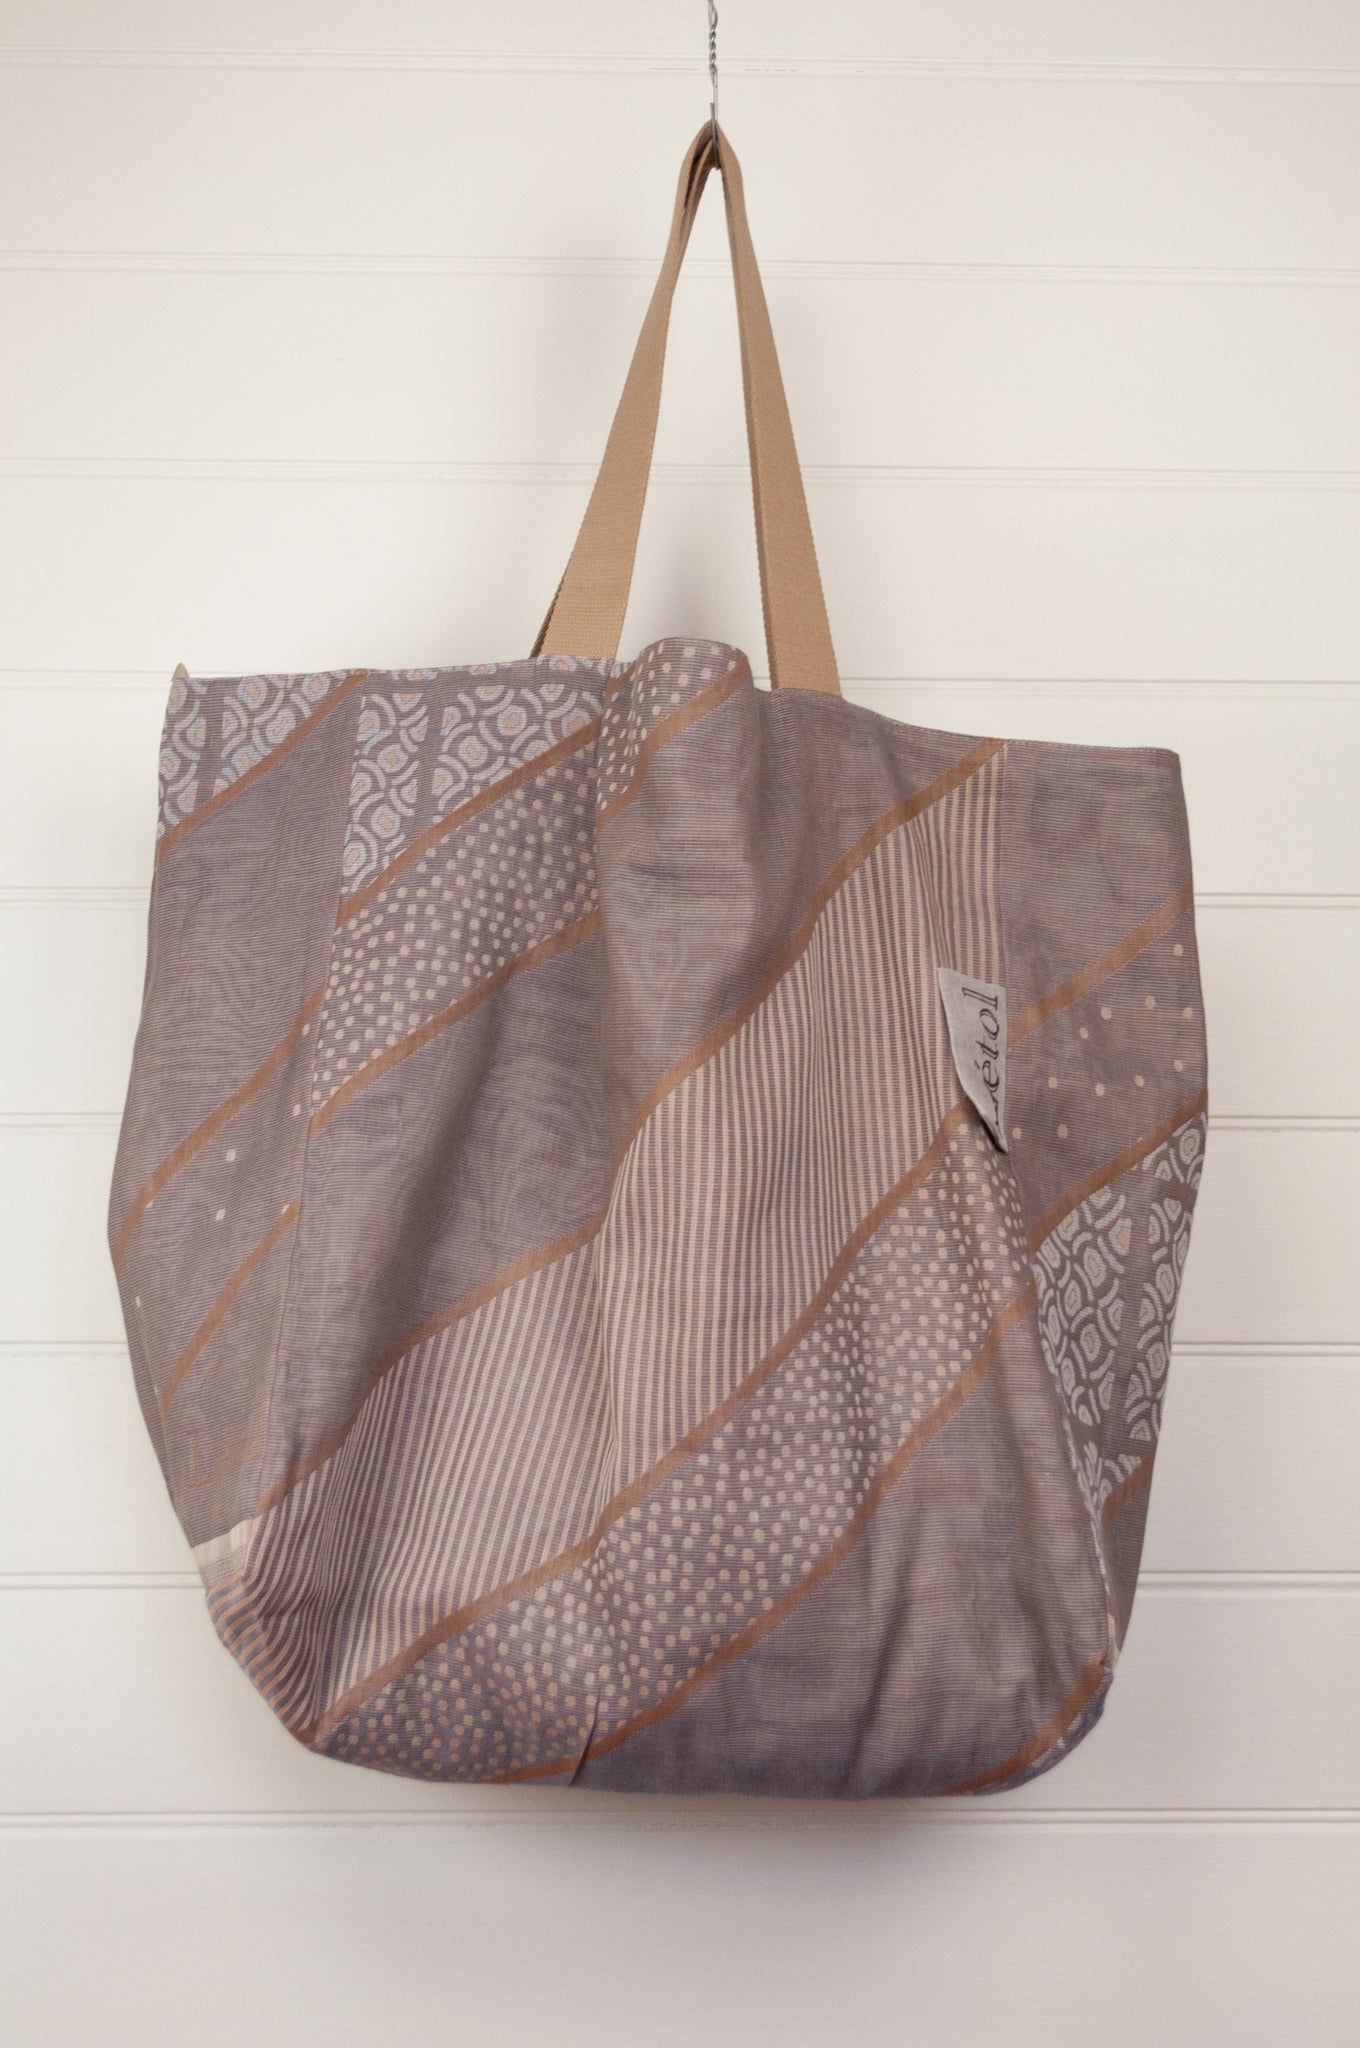 large Létol reversible large tote bag made in France from organic cotton, has a striking geometric design in pewter and bronze, and on the reverse a co-ordinating design in similar tones with highlights in coral, olive and denim.